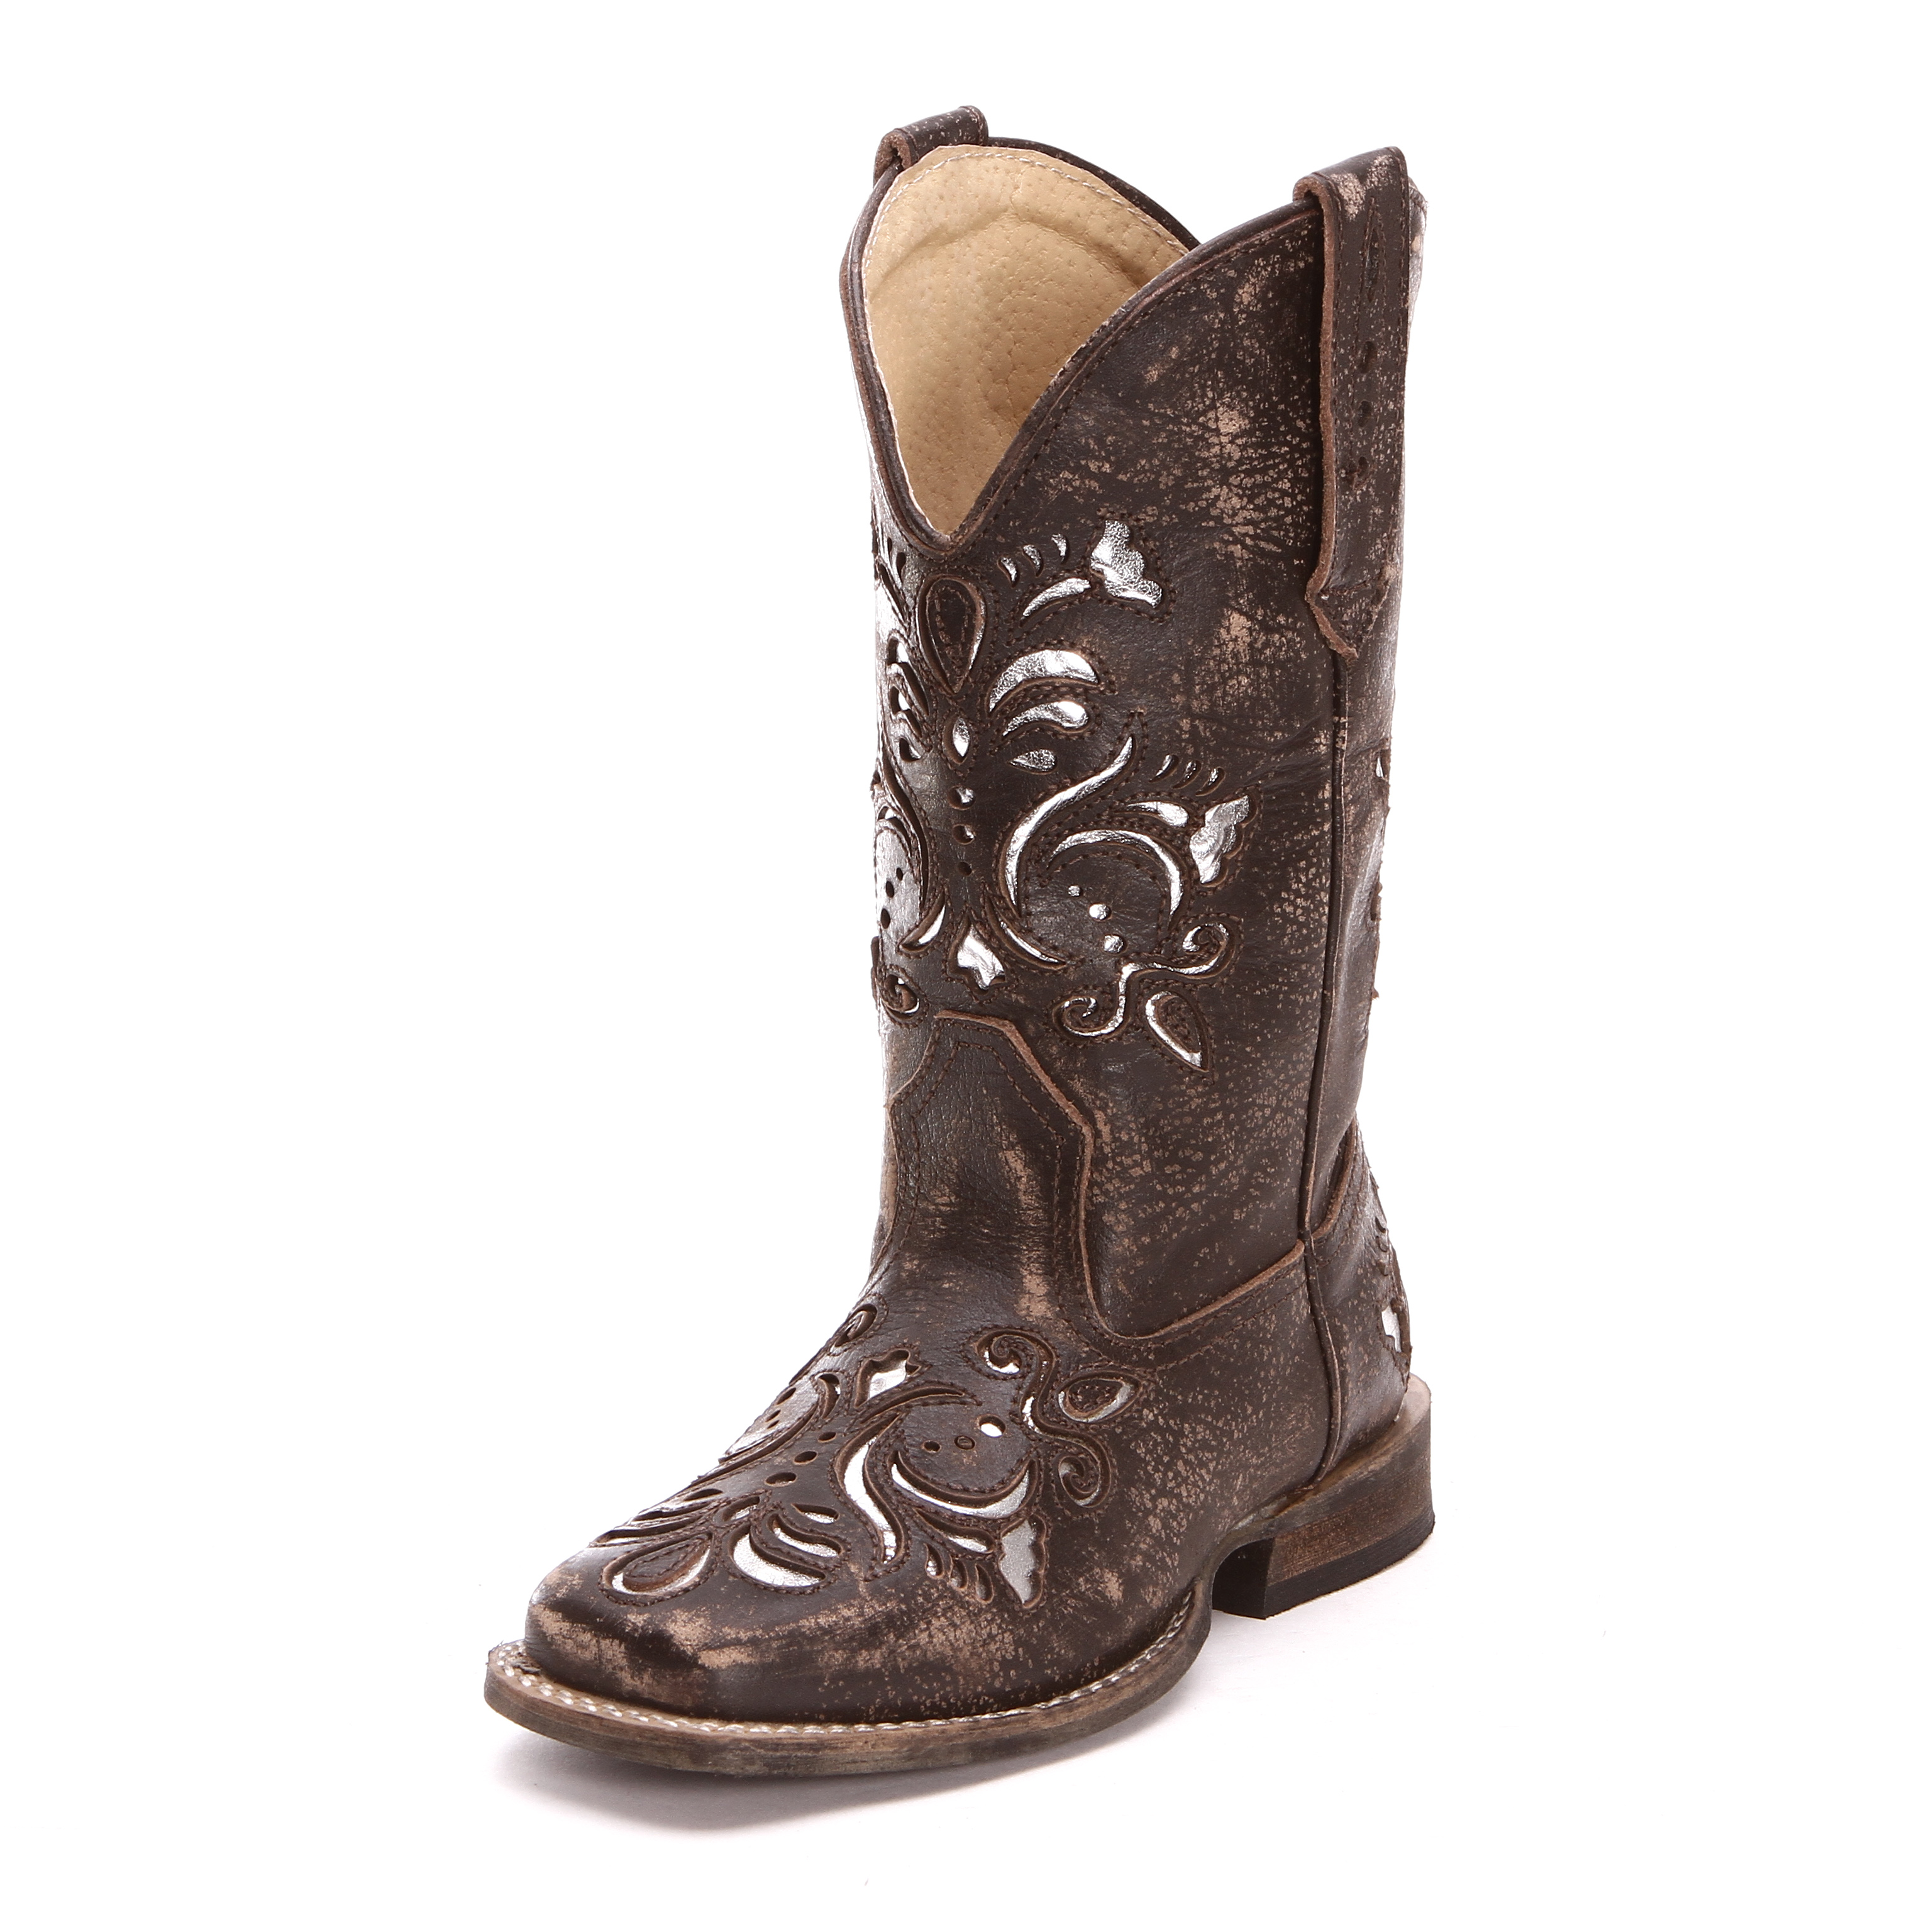 c5f168a8859 Roper Childrens Girls Inlay Square Toe Cowboy Boots Brown